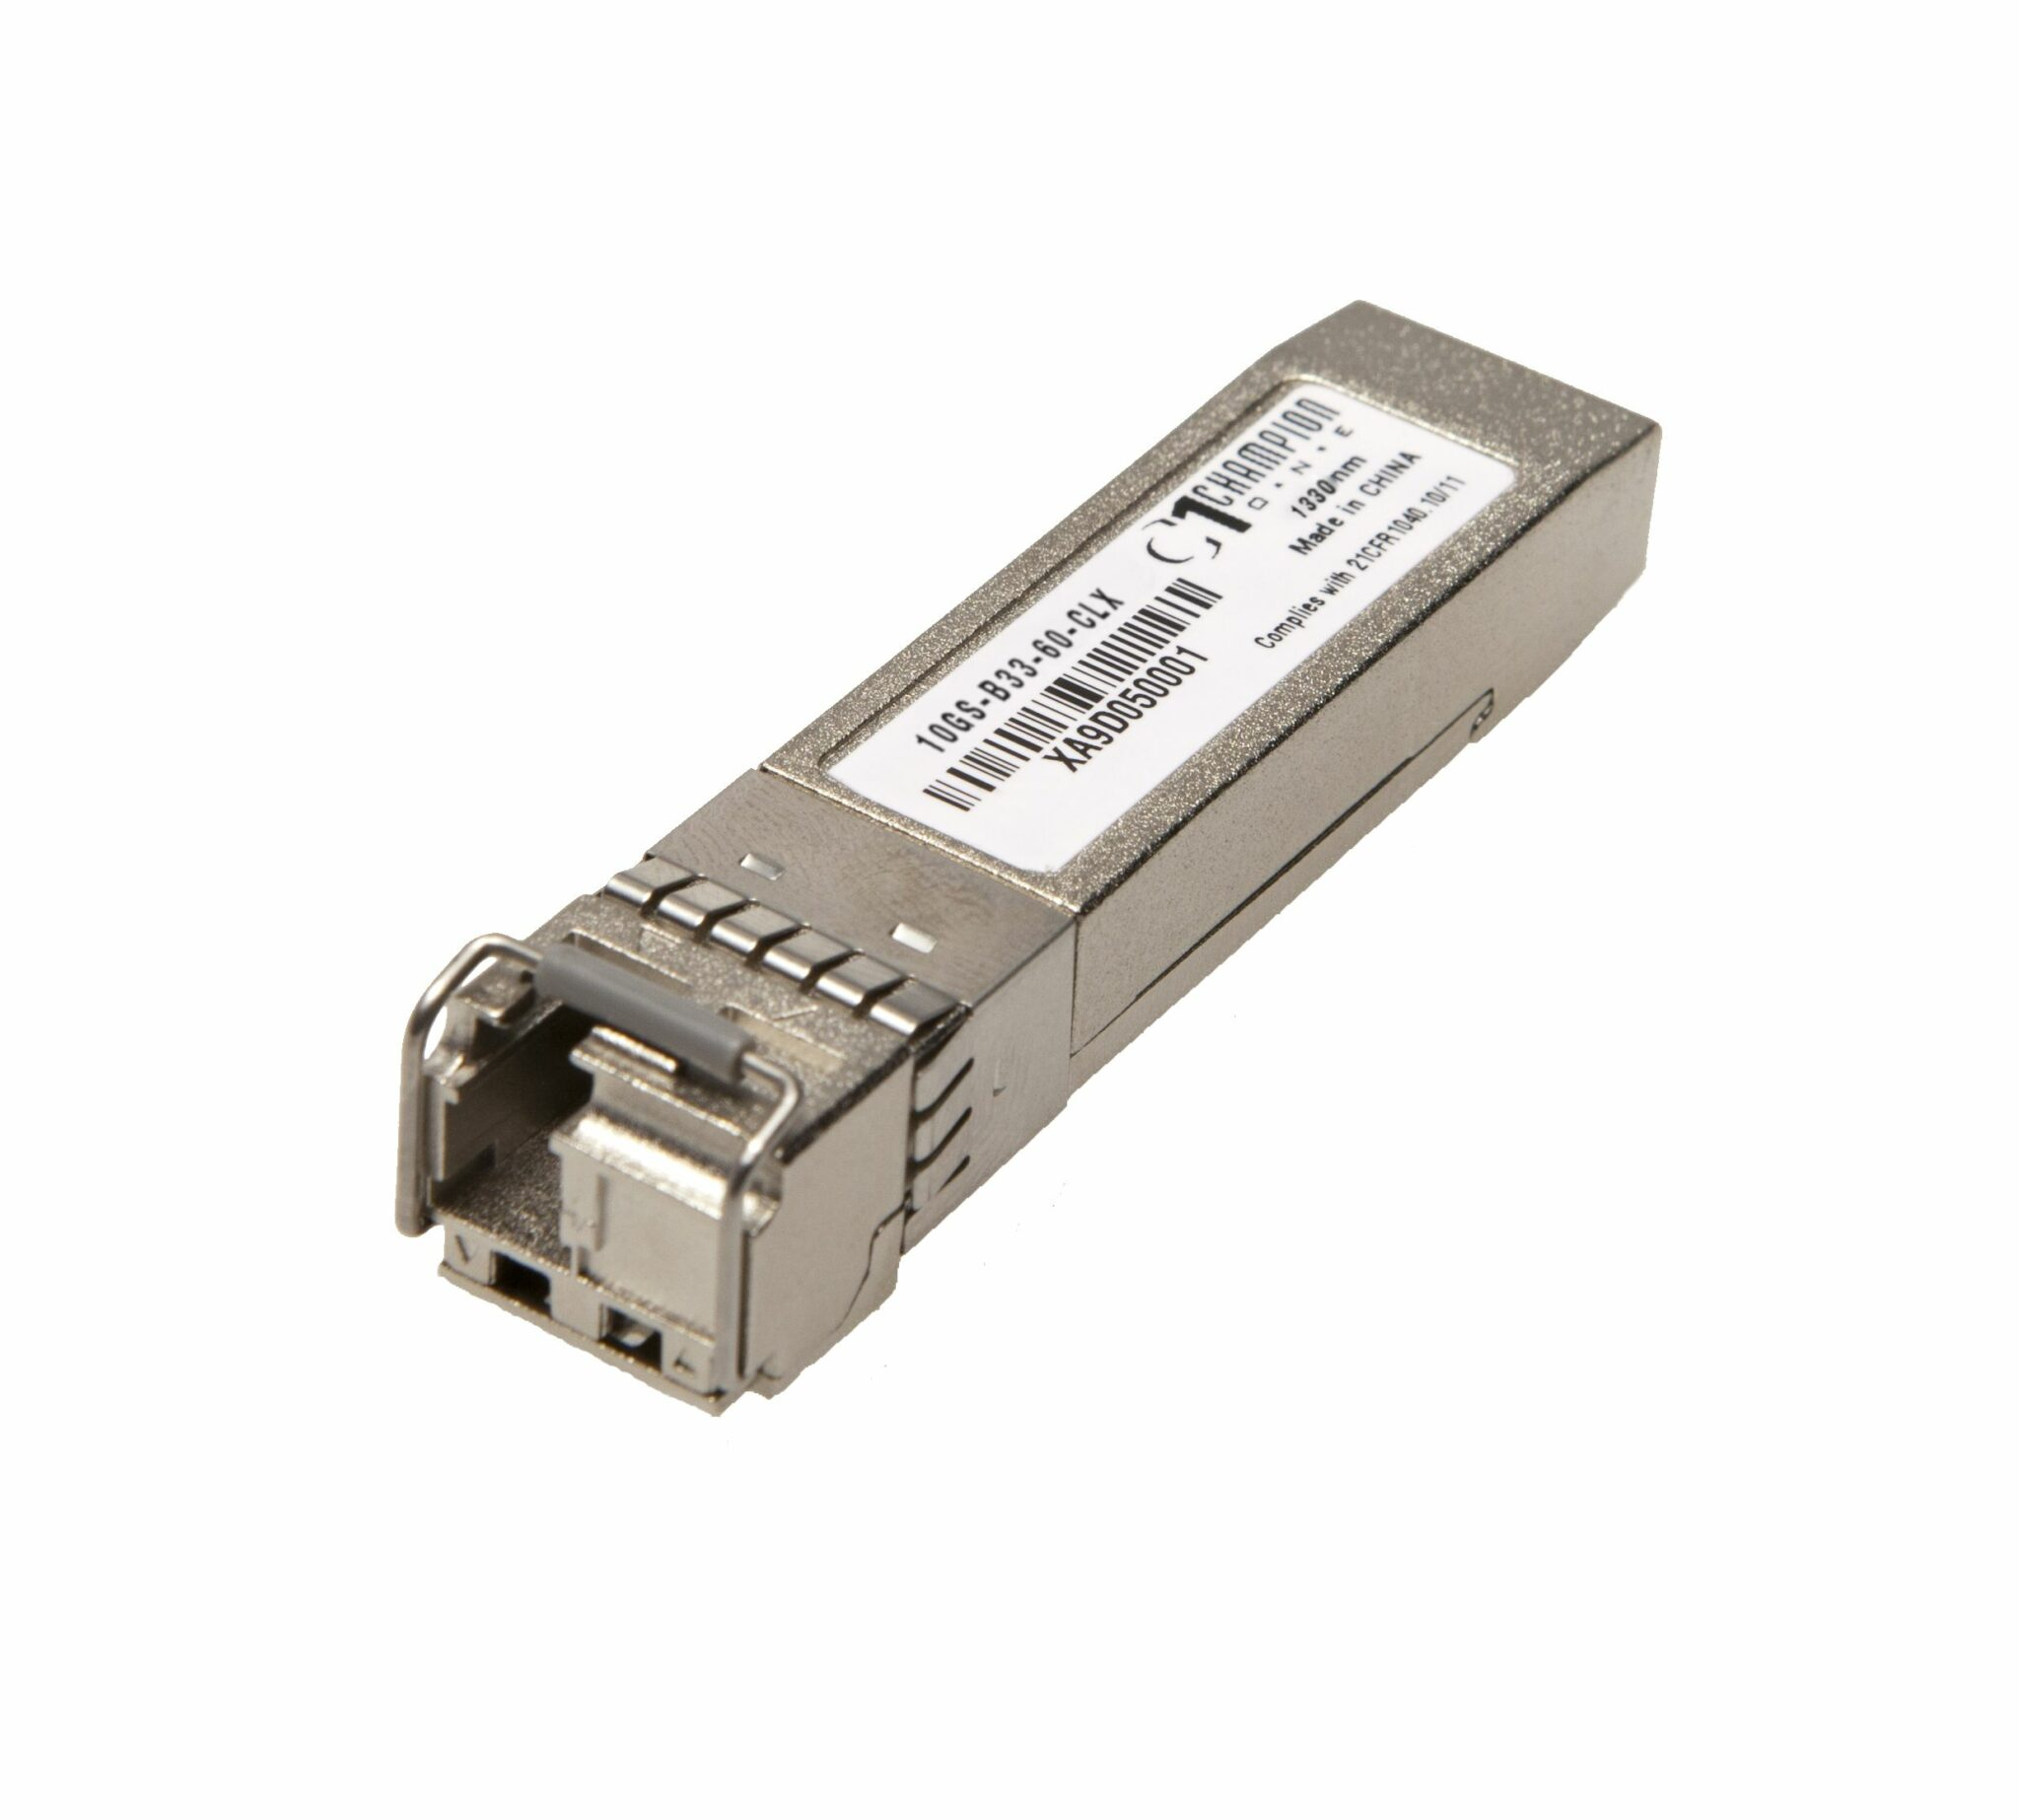 SFP+ SF 10GBase-ER 1330nm 60km, Calix compatible